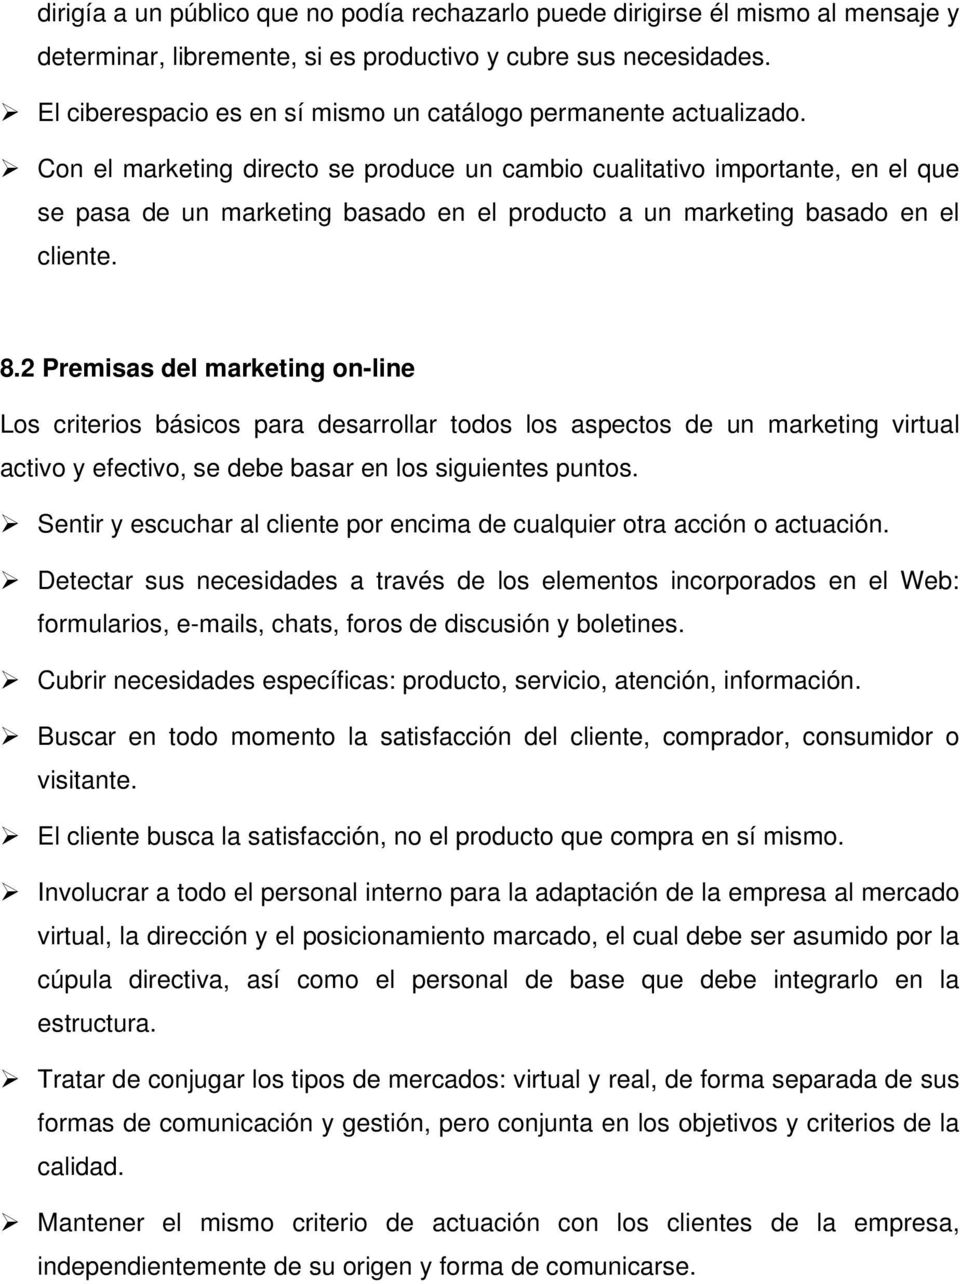 Con el marketing directo se produce un cambio cualitativo importante, en el que se pasa de un marketing basado en el producto a un marketing basado en el cliente. 8.